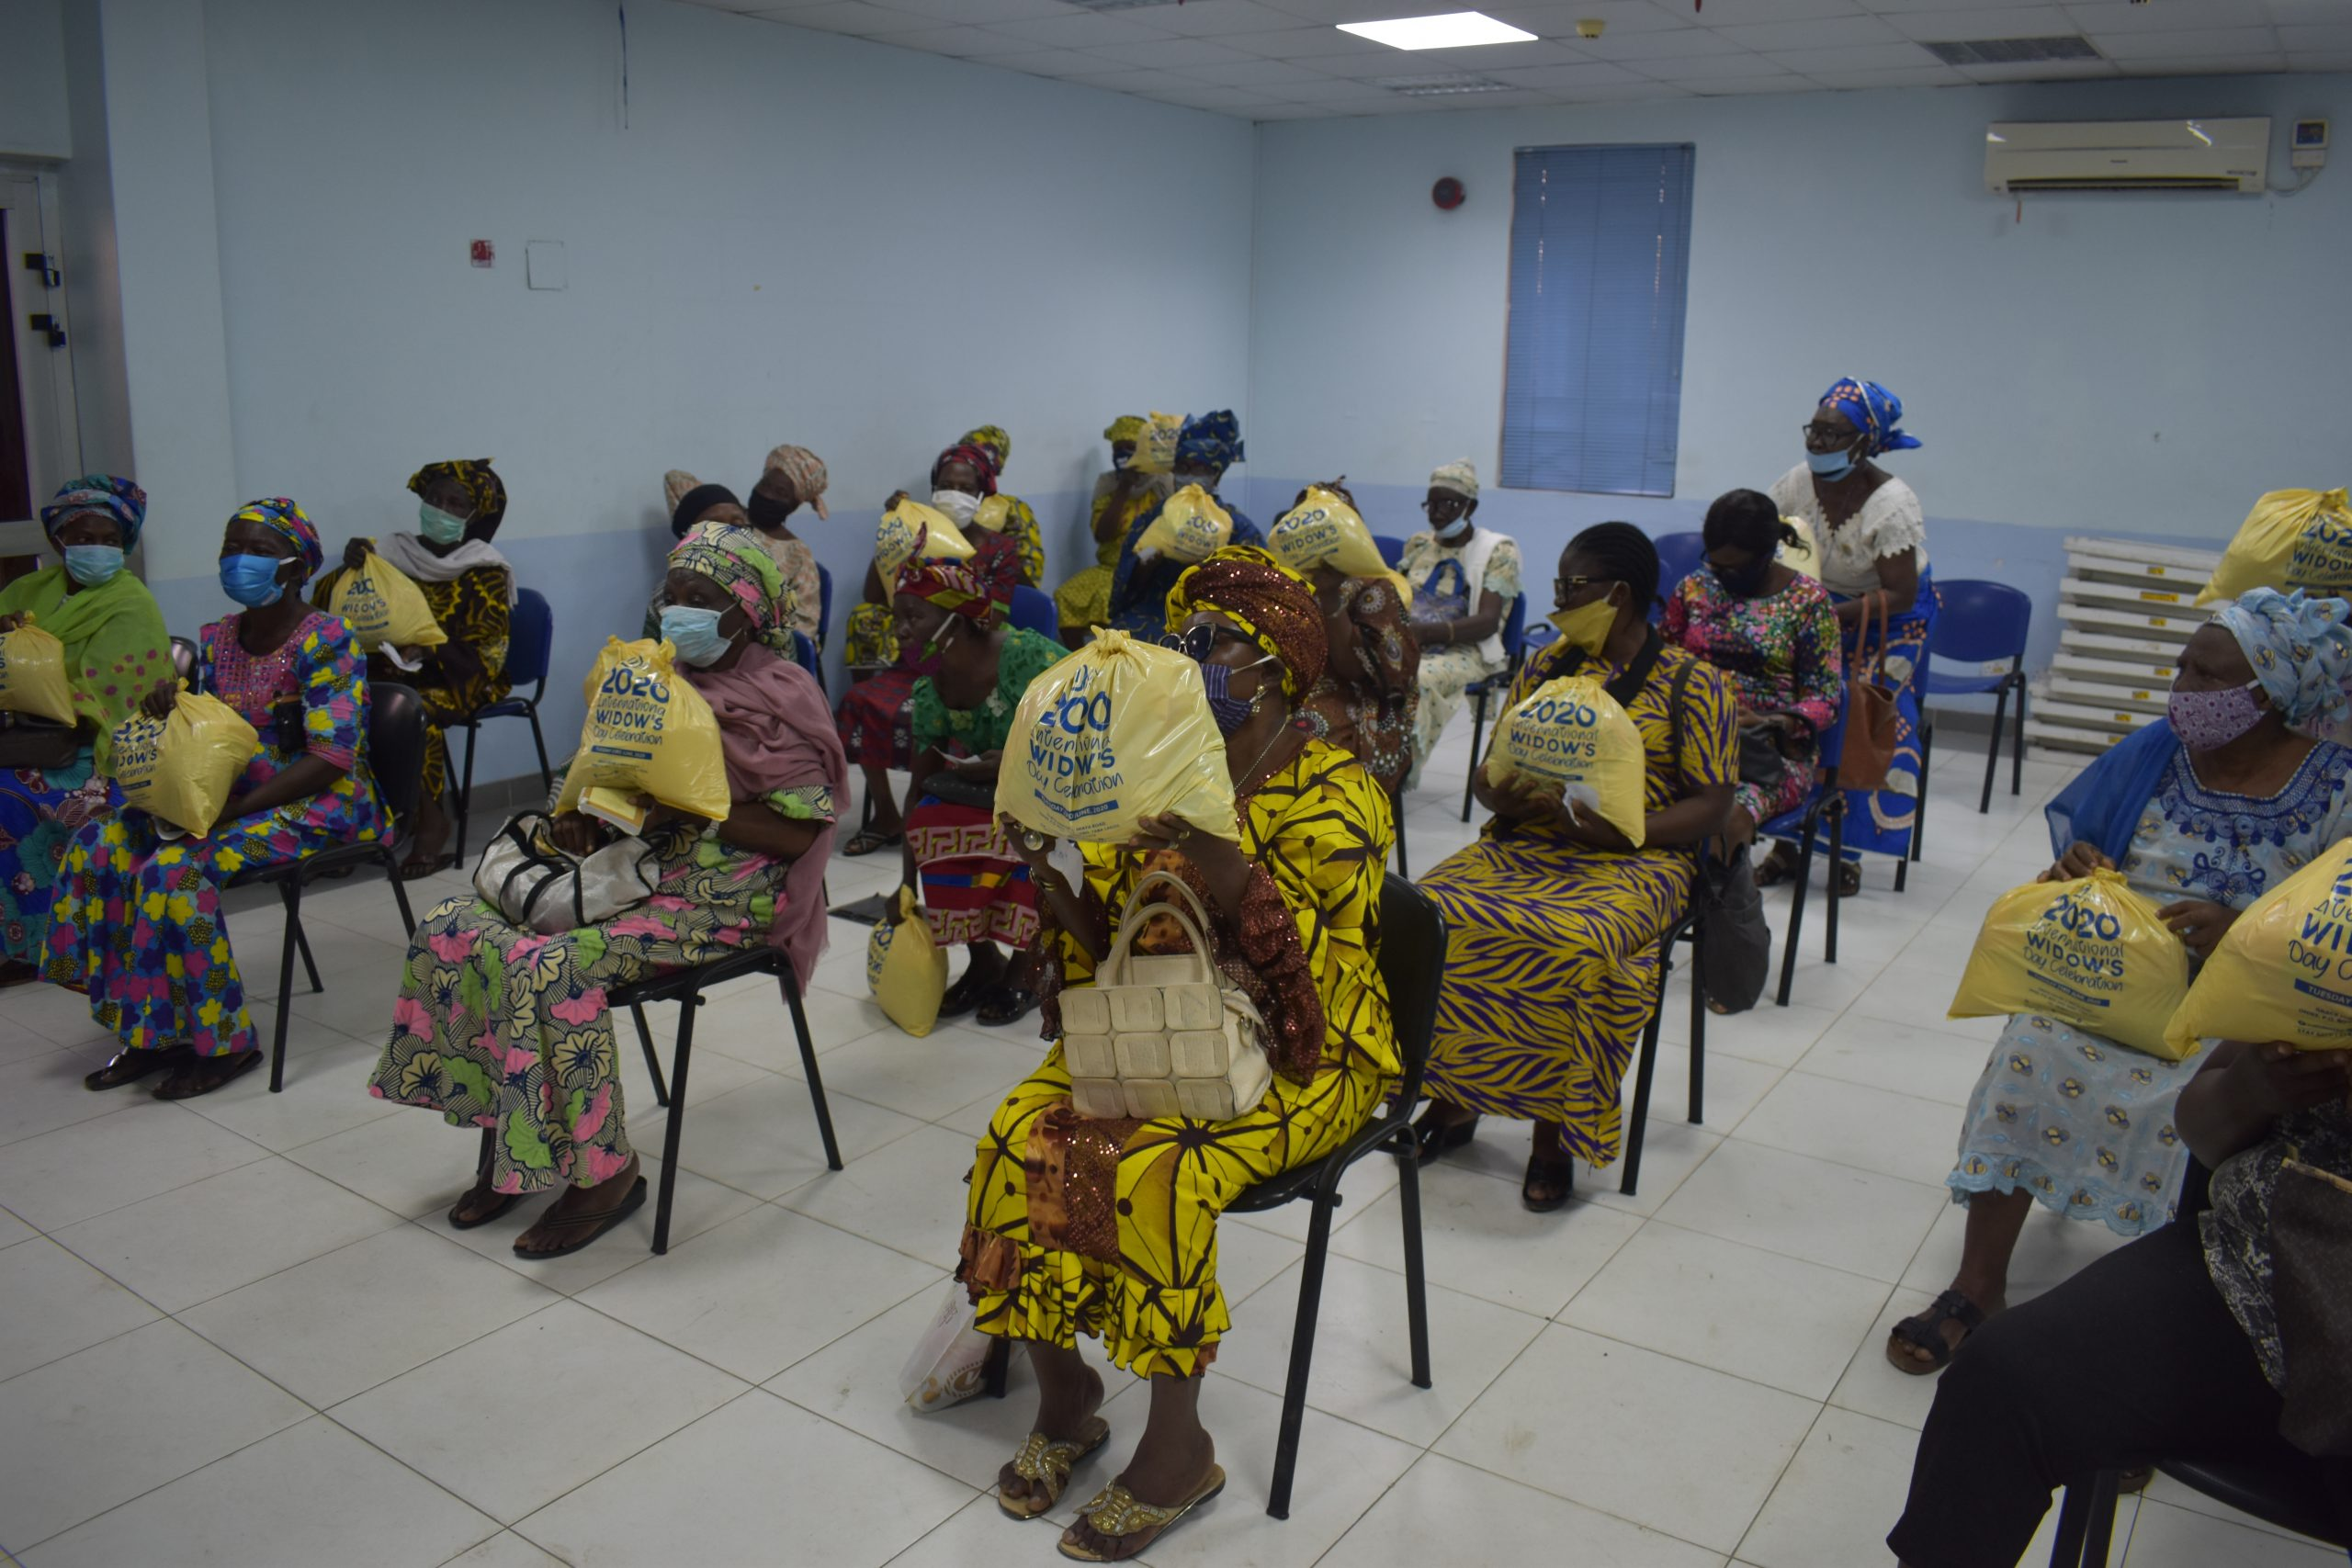 INTERNATIONAL WIDOWS' DAY: HDI SUPPORT 200 WIDOWS WITH PALLIATIVE